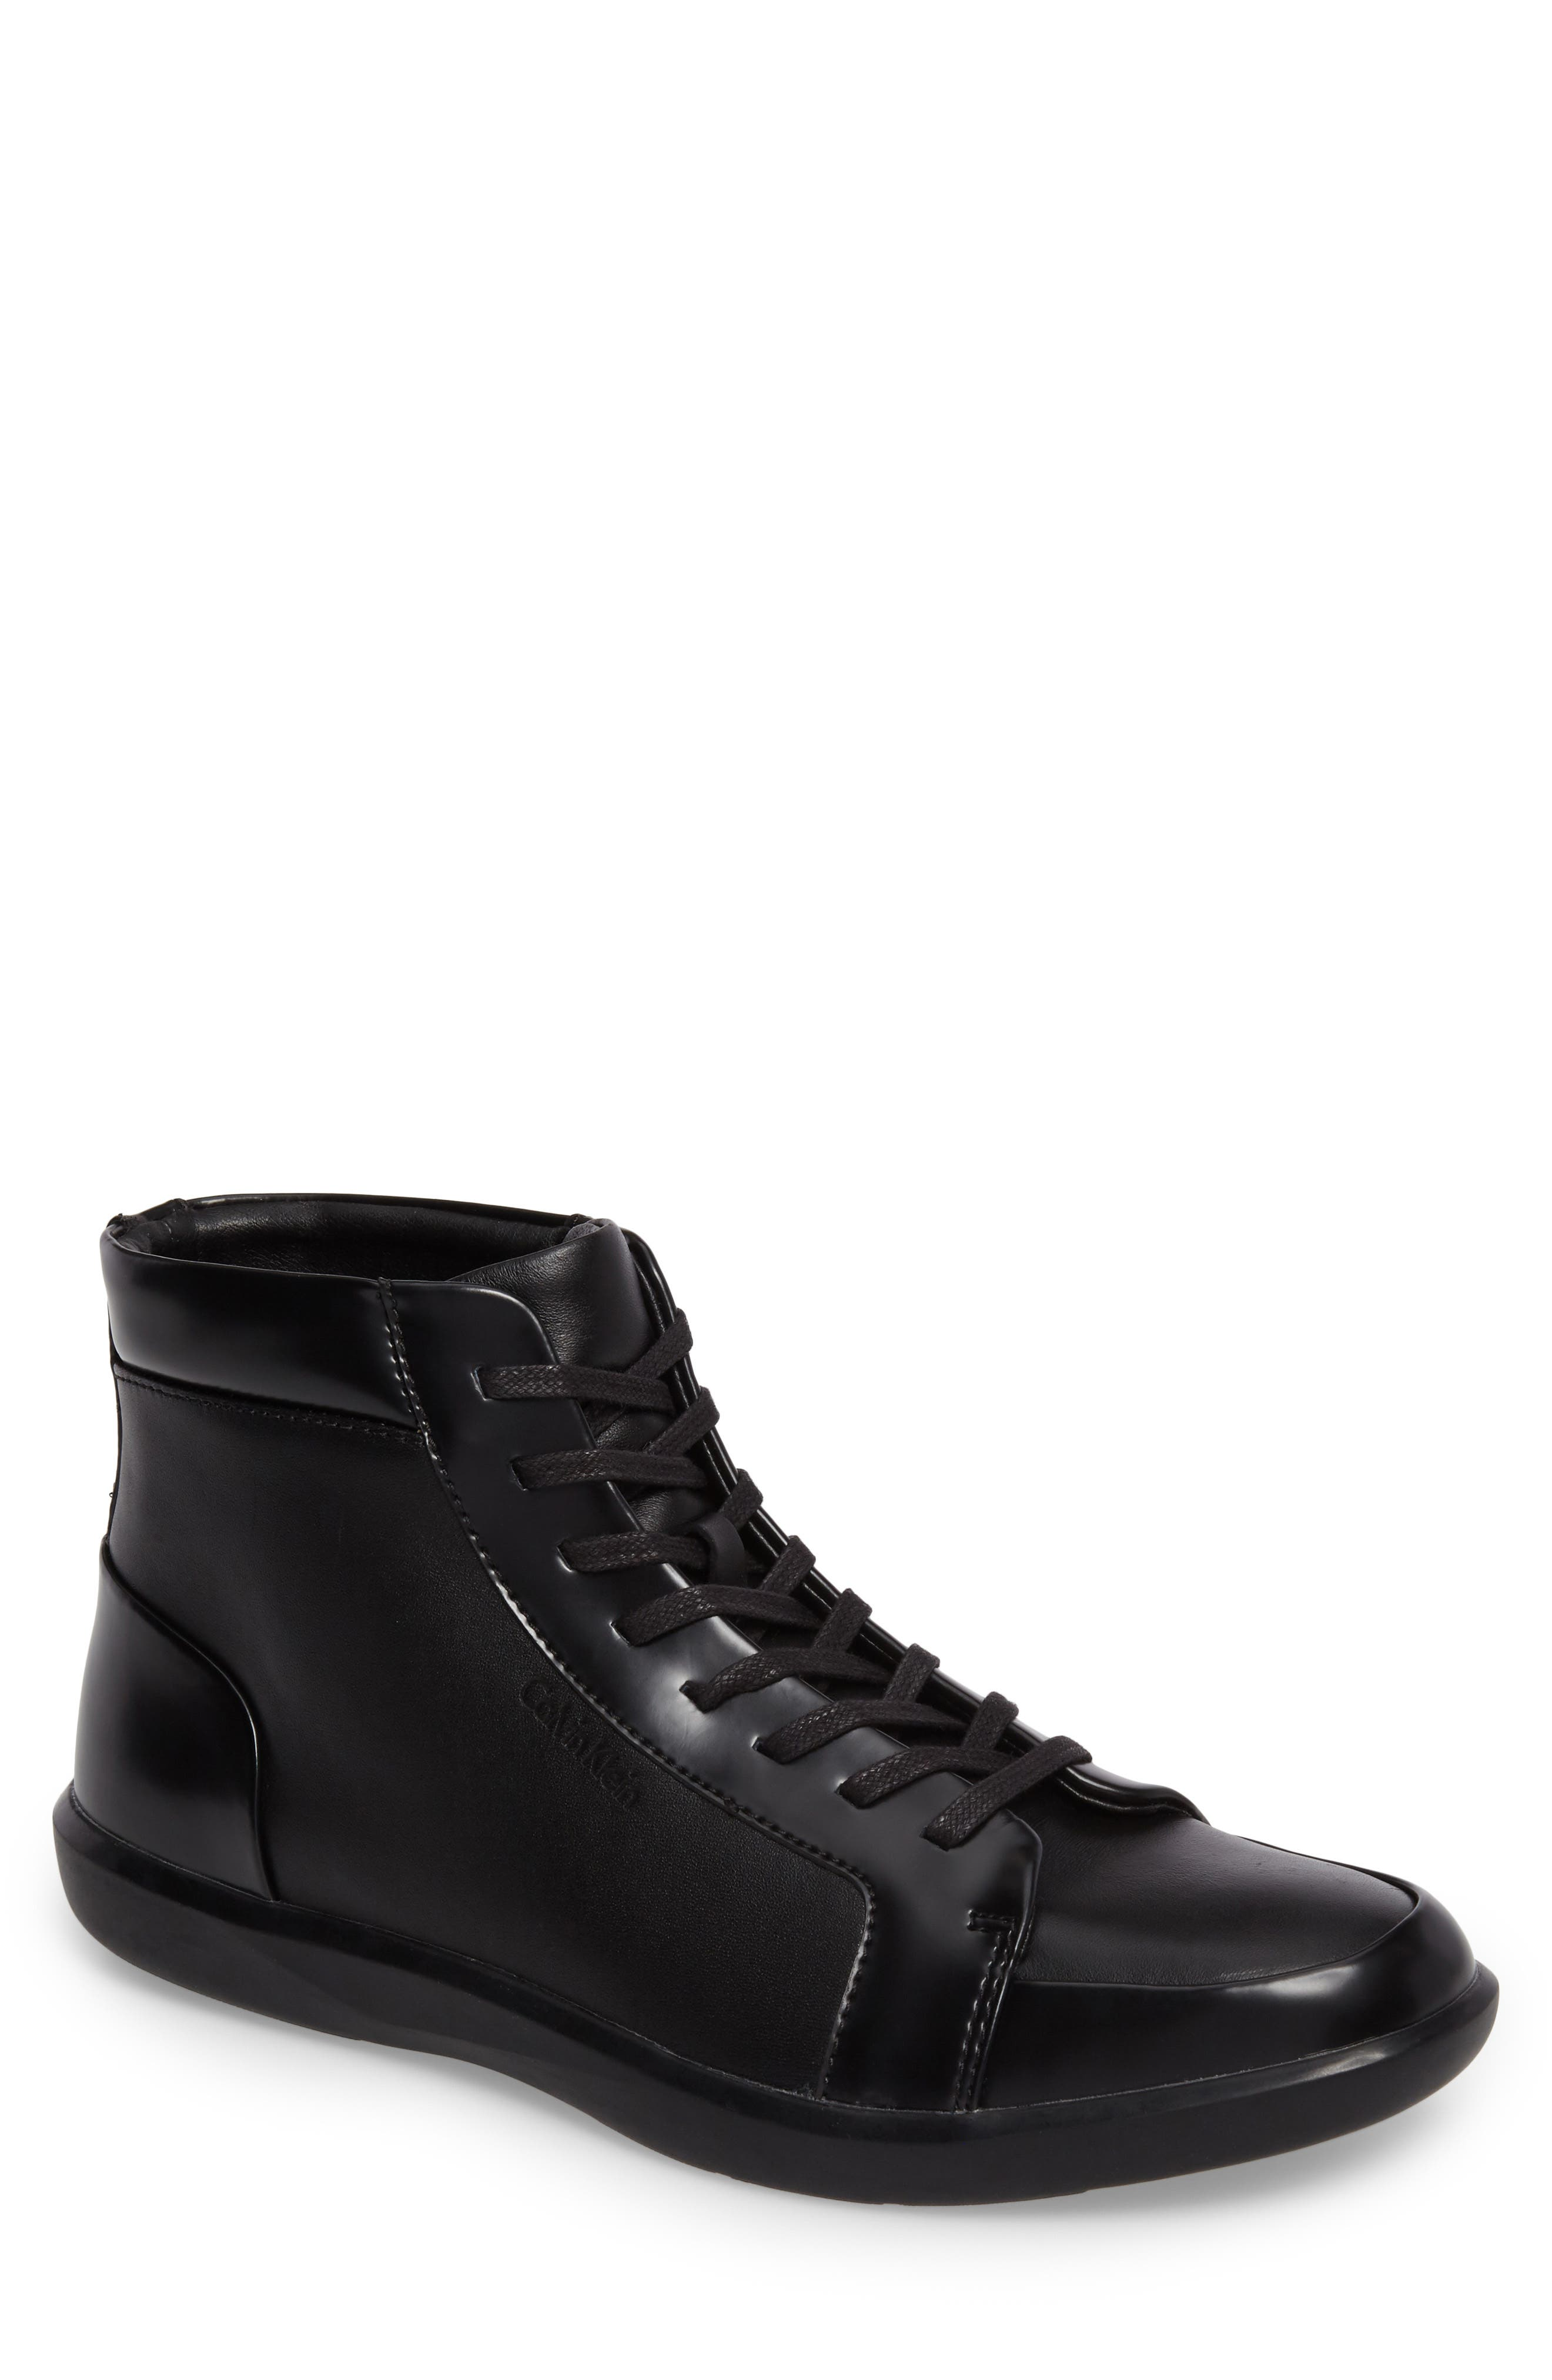 Malvern Sneaker,                             Main thumbnail 1, color,                             Black